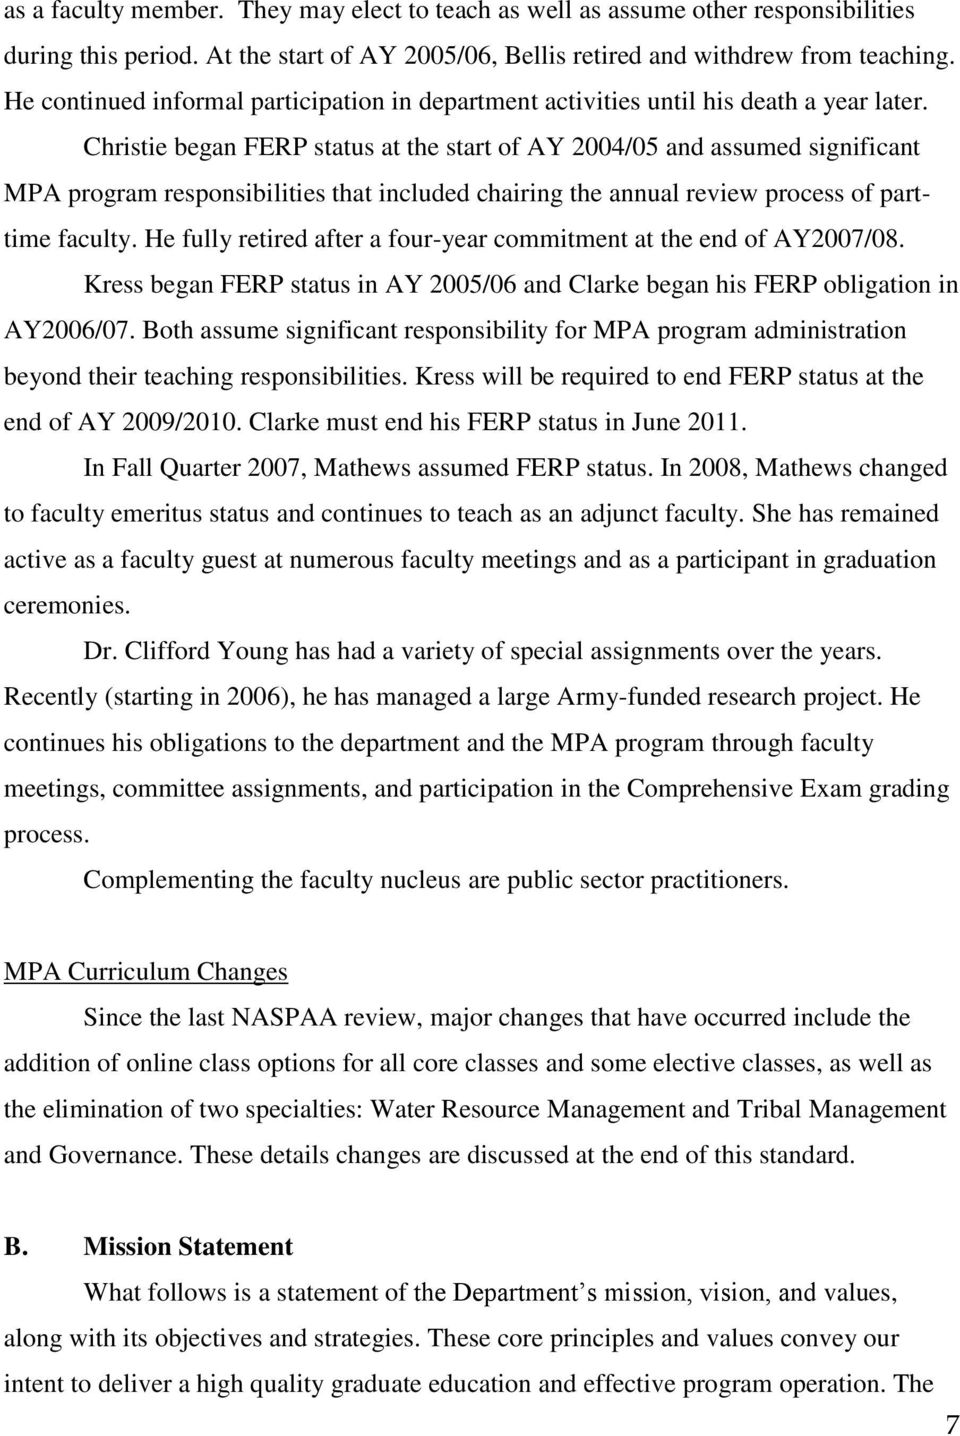 Christie began FERP status at the start of AY 2004/05 and assumed significant MPA program responsibilities that included chairing the annual review process of parttime faculty.